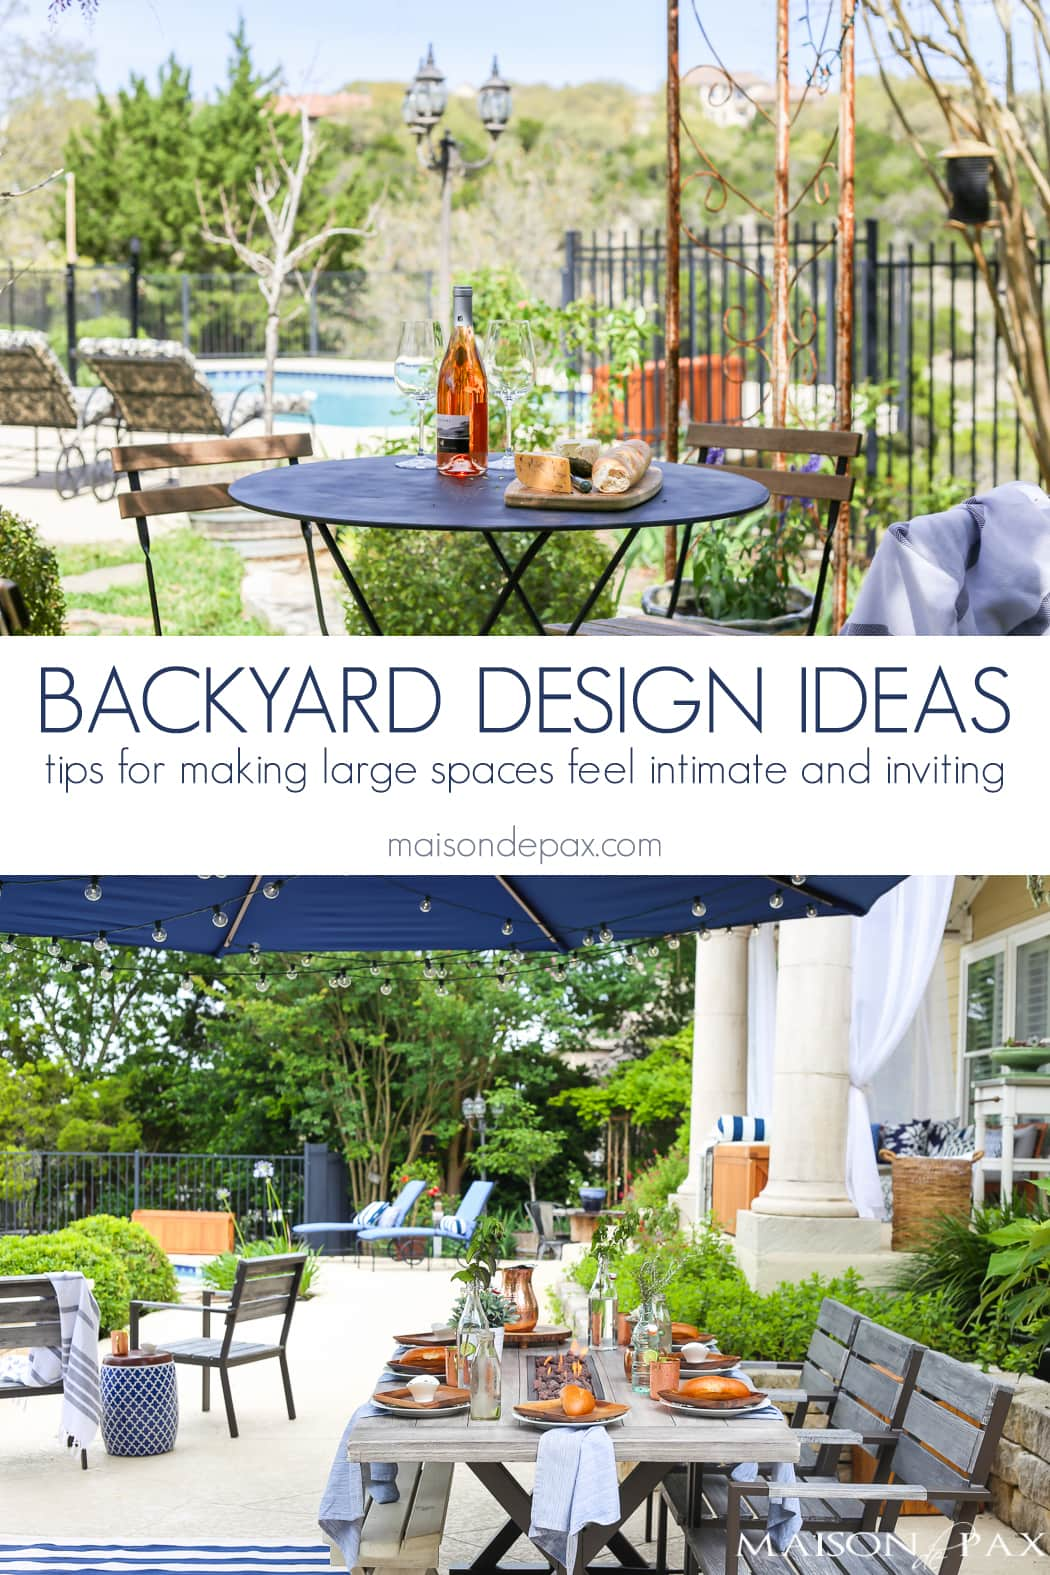 Ideas for designing a large backyard: tips for creating a separate spaces that are intimate and inviting in a large outdoor area #backyard #outdoorentertaining #backyarddesign #outdoordining